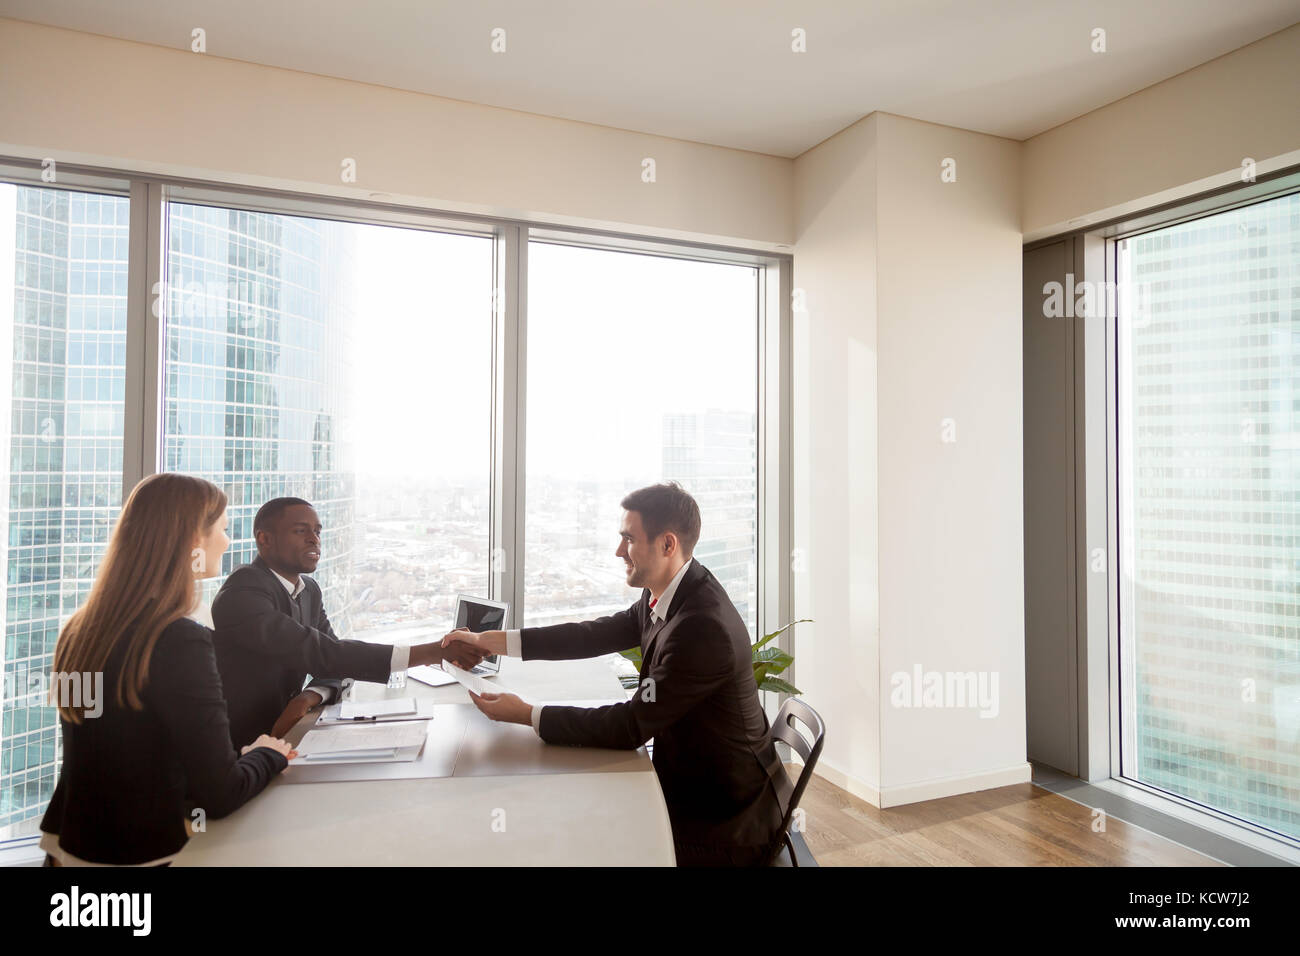 Satisfied multinational business partners celebrating successful negotiations, deal conclusion, profitable agreement. - Stock Image